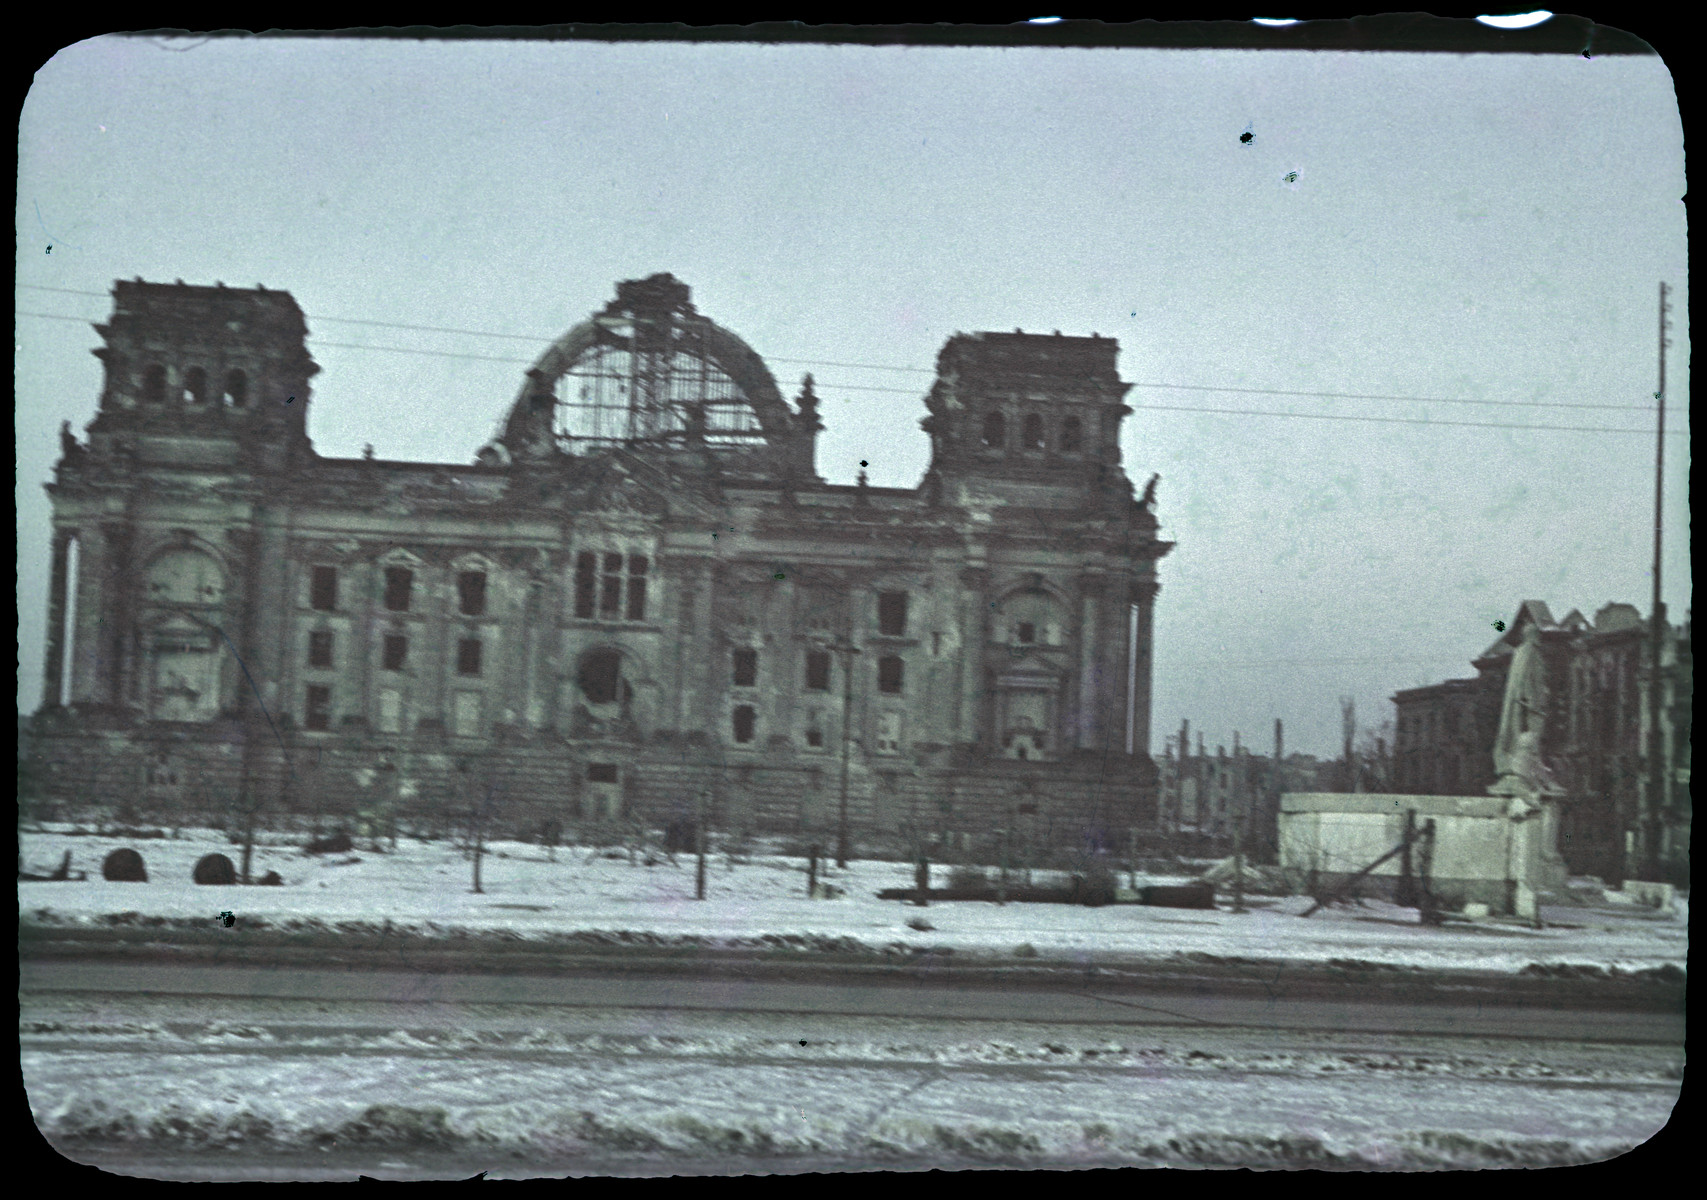 A postwar view of the Reichstag.